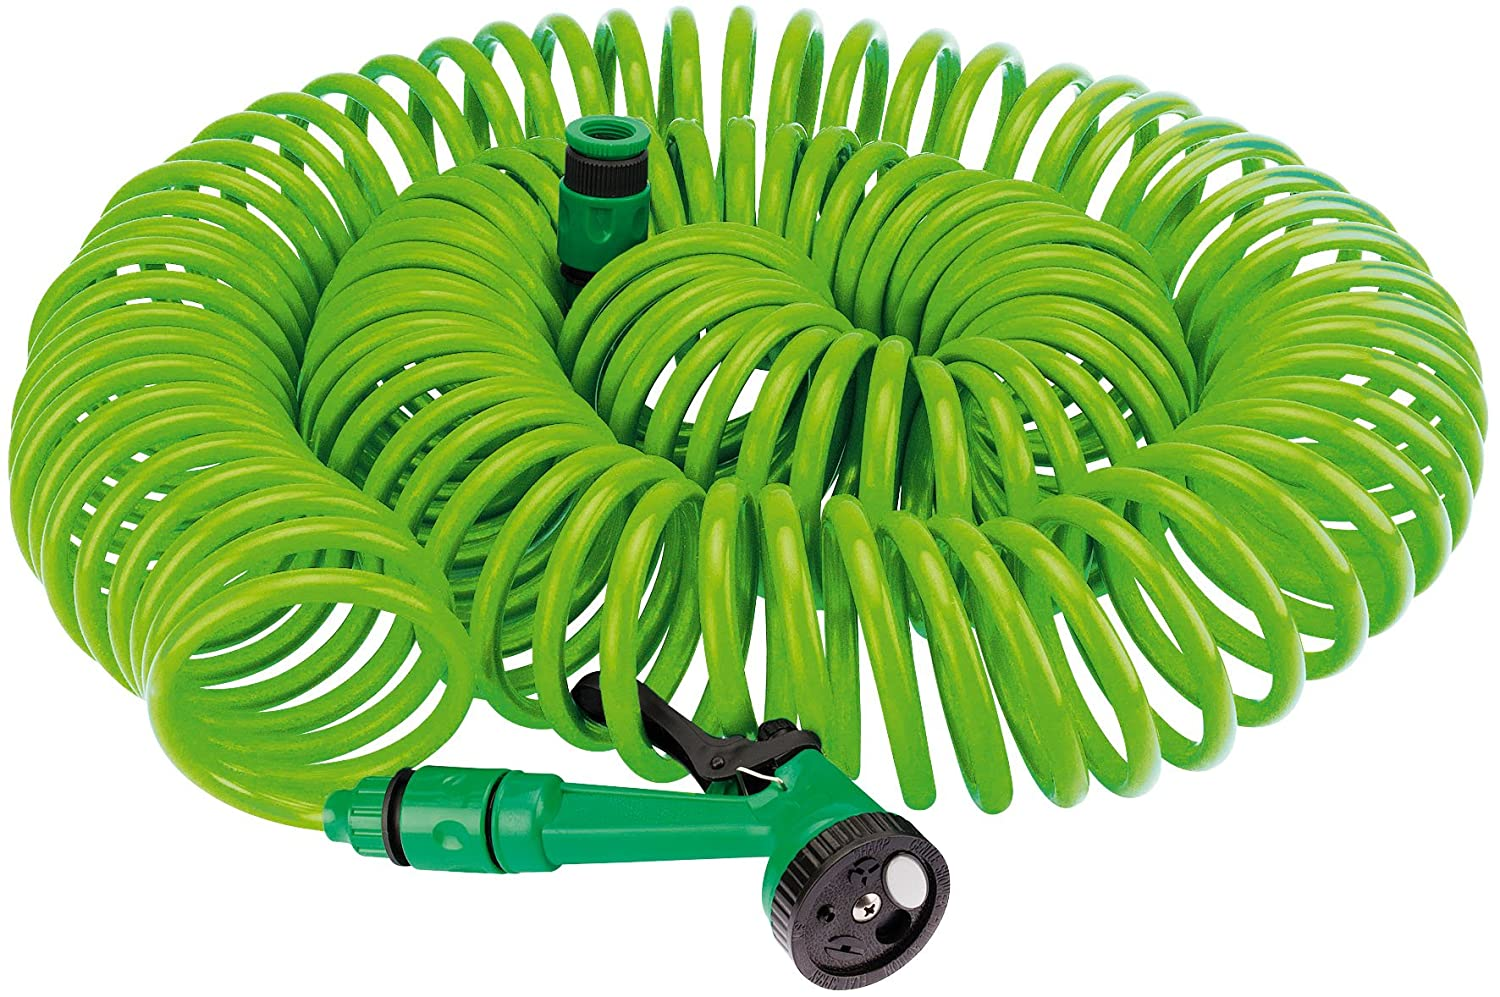 Draper 83984 10 m Recoil Hose with Spray Gun and Tap Connector DRA83984